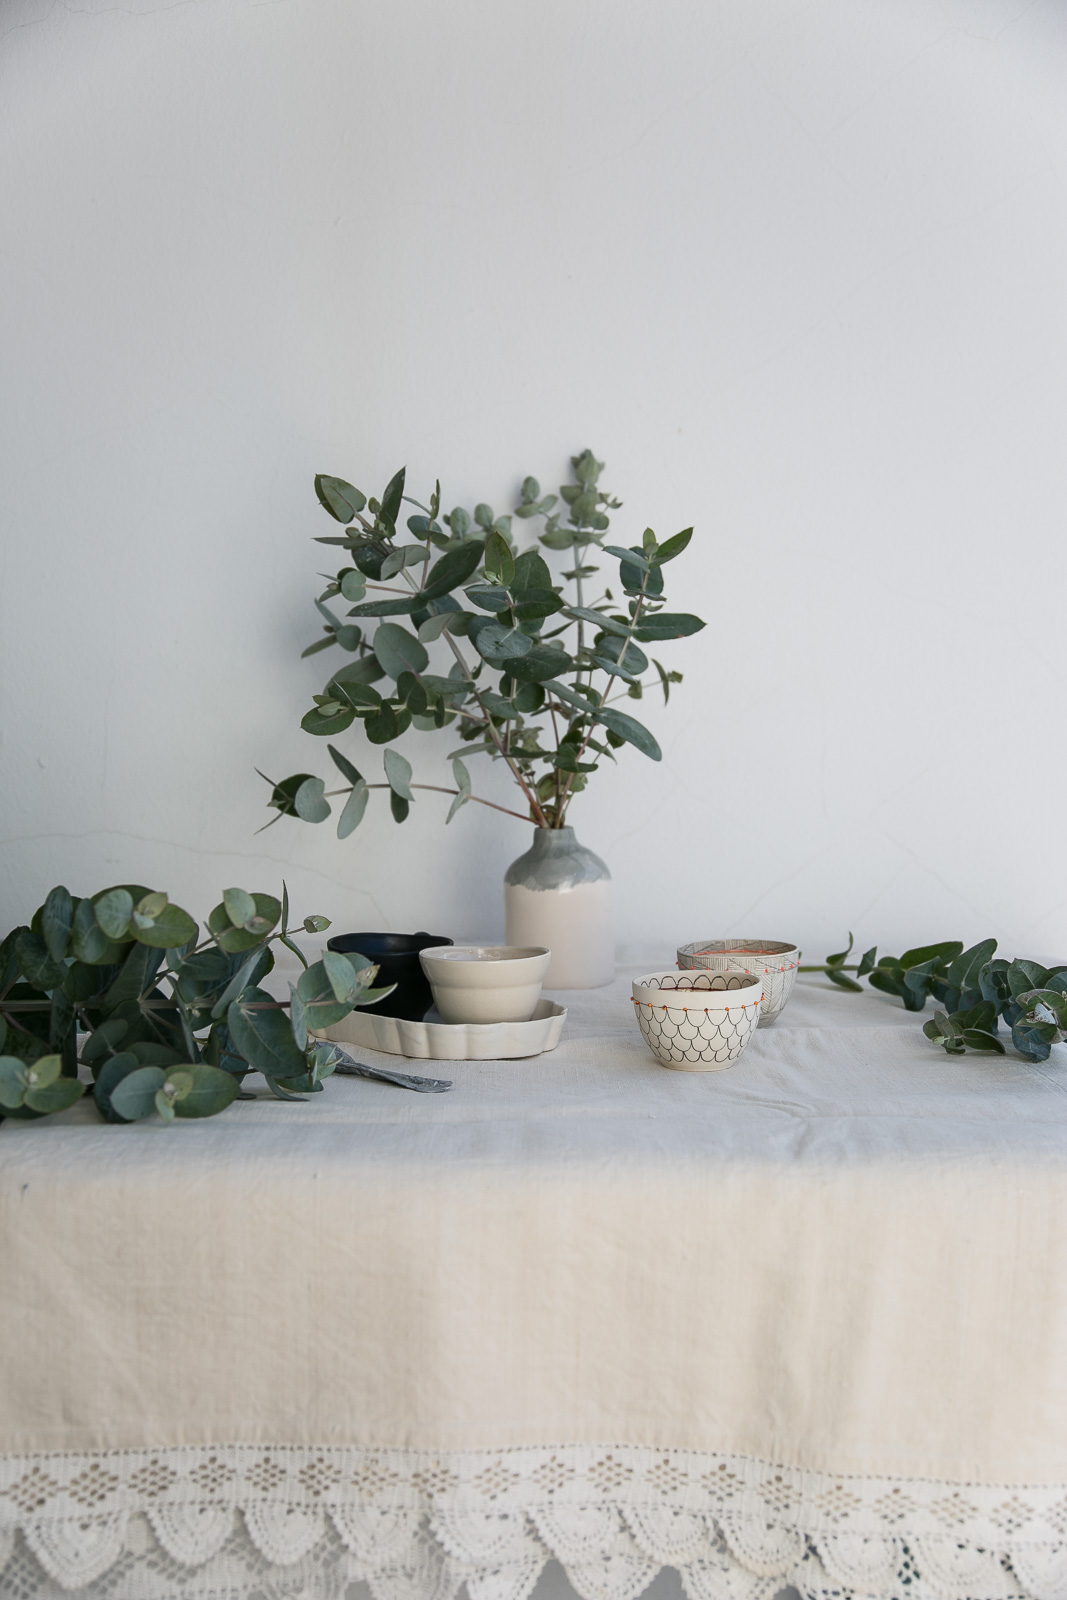 Anna Westerlund ceramics & Eucalyptus | Styling & Photo by Thais FK